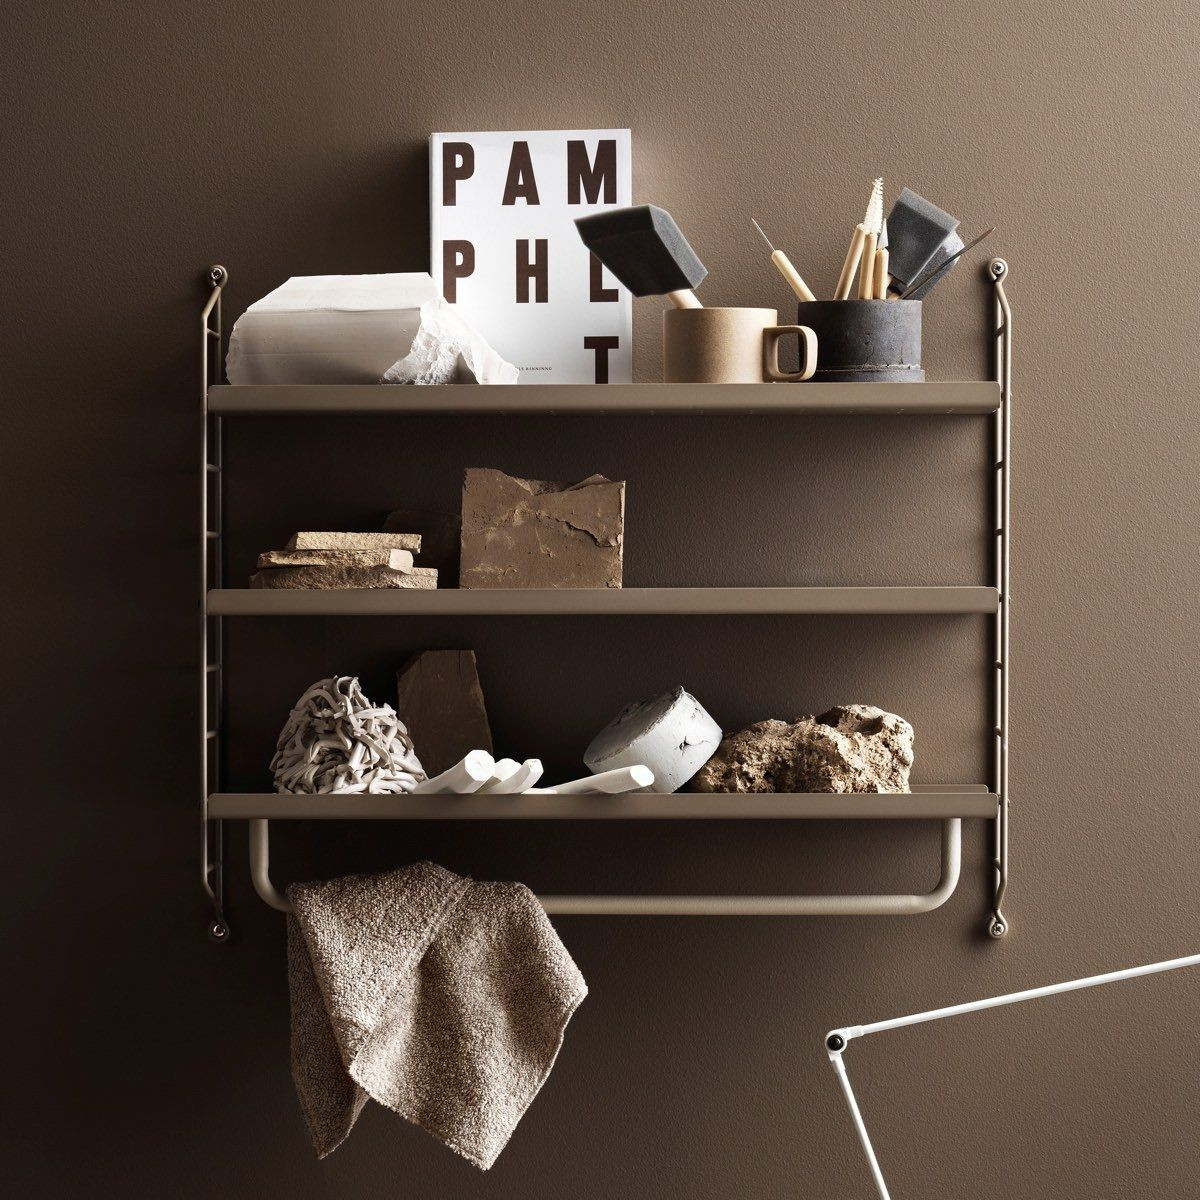 Store in Style - Make the Most of your Walls.